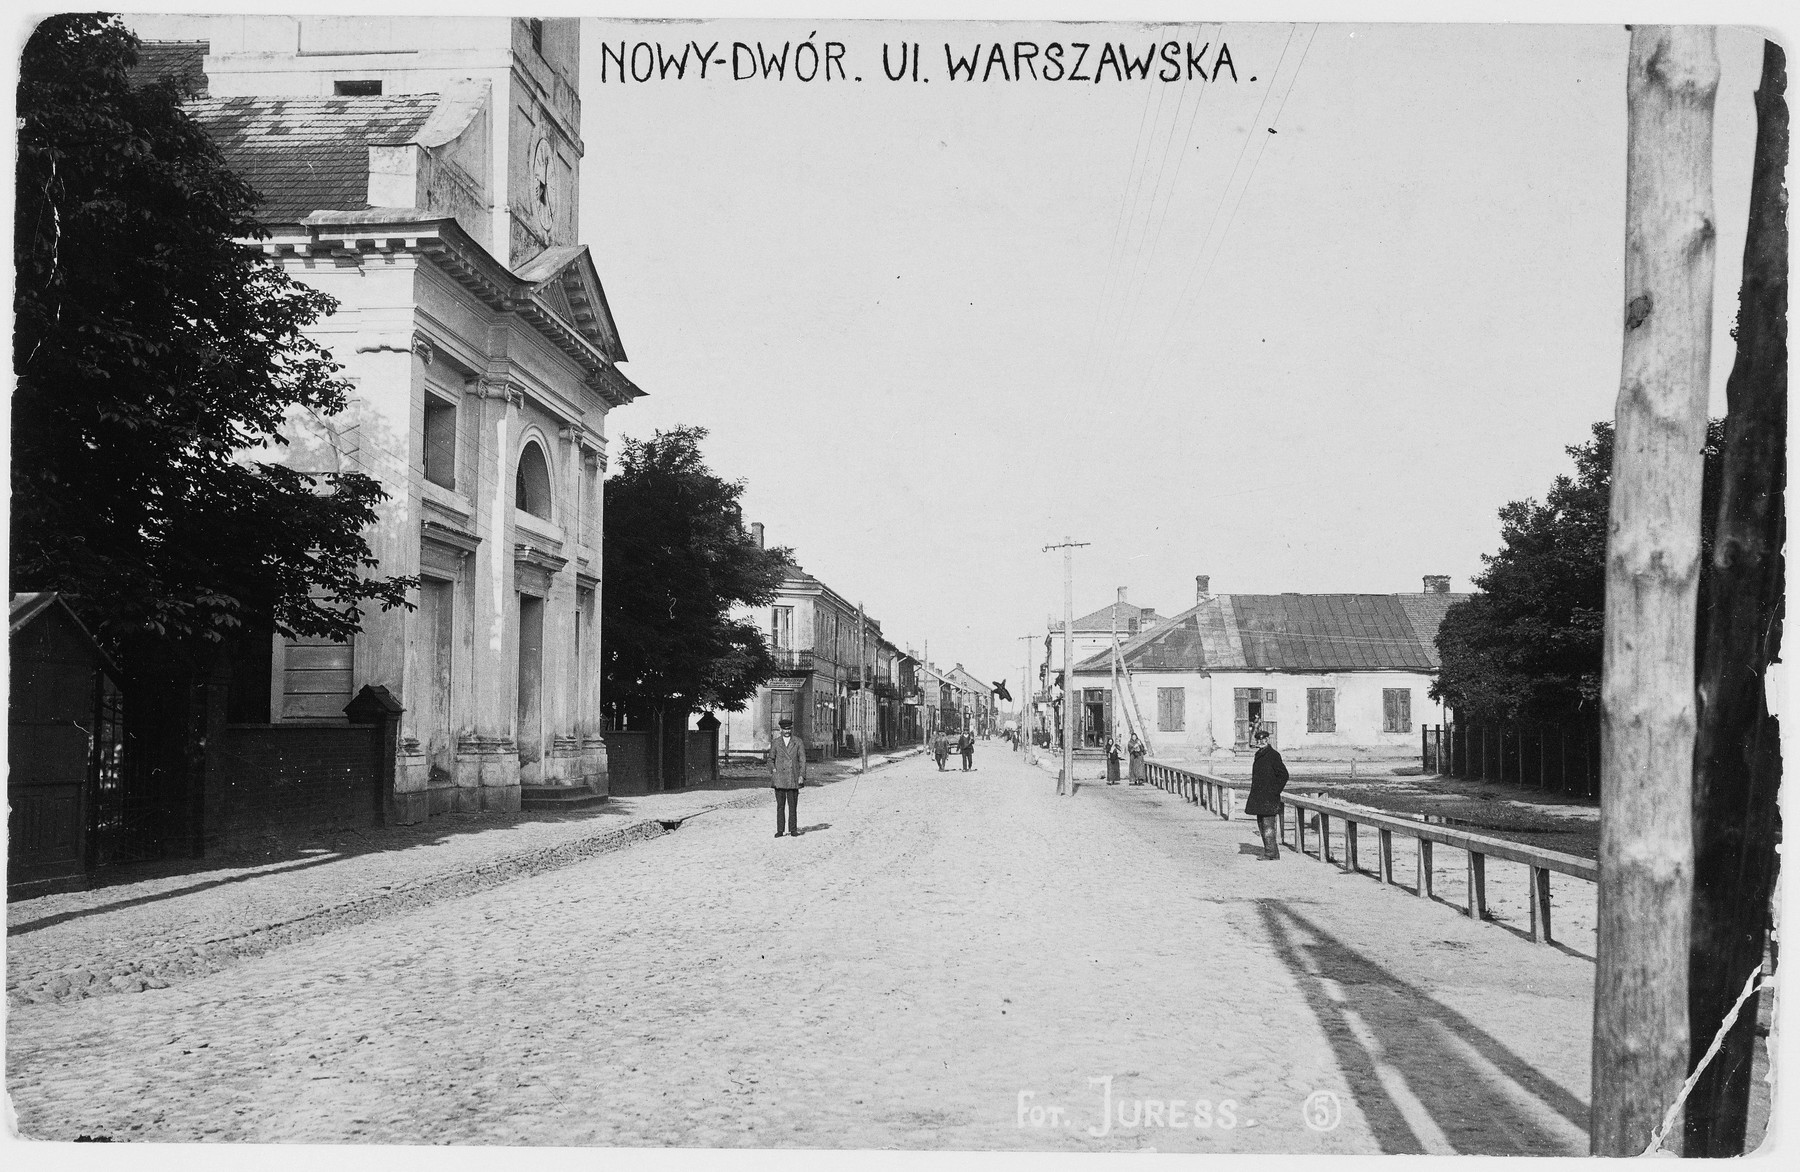 View of the main street of Nowy Dwor.